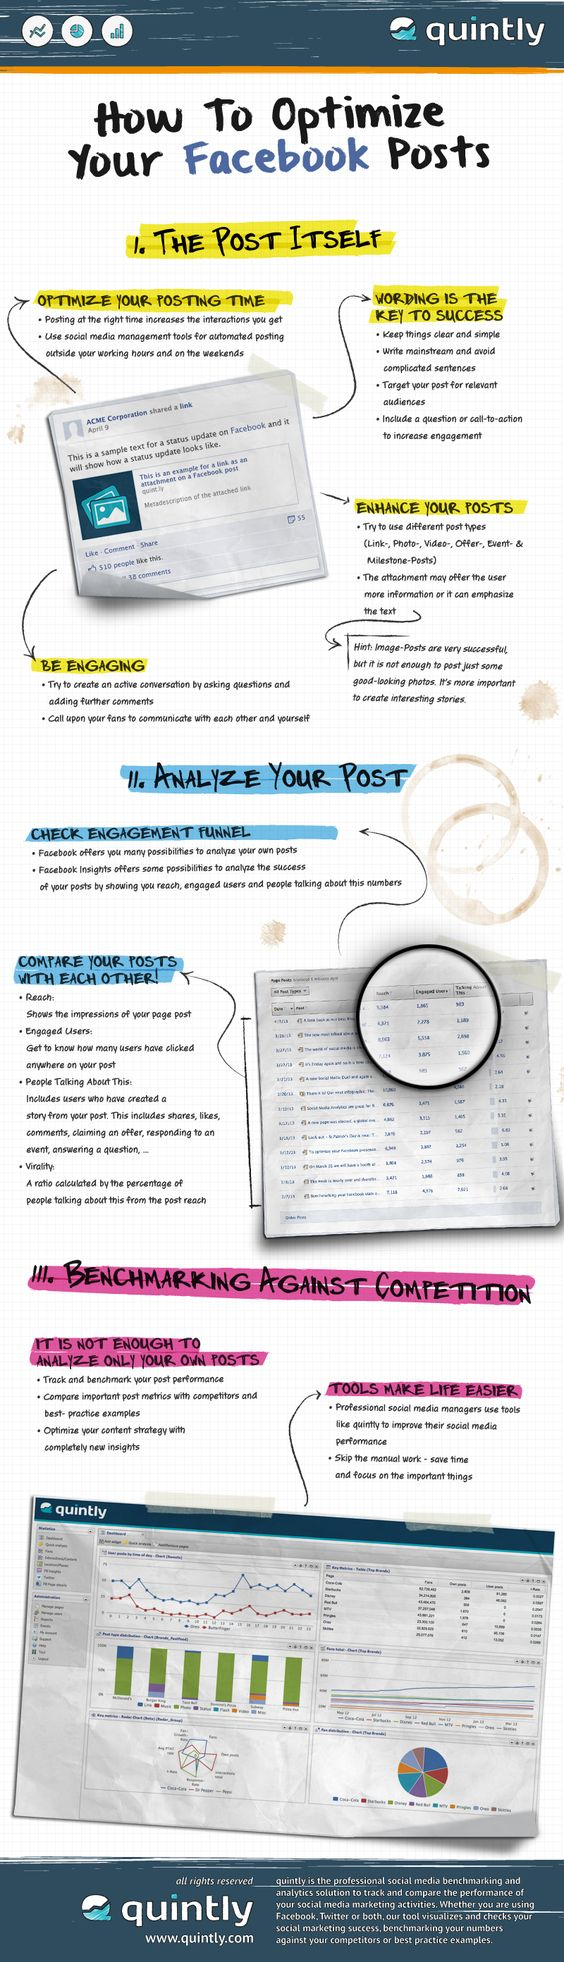 how to optimize your facebook posts infographic leslie love tips and tricks that can help you to optimize your facebook posts to increase your facebook